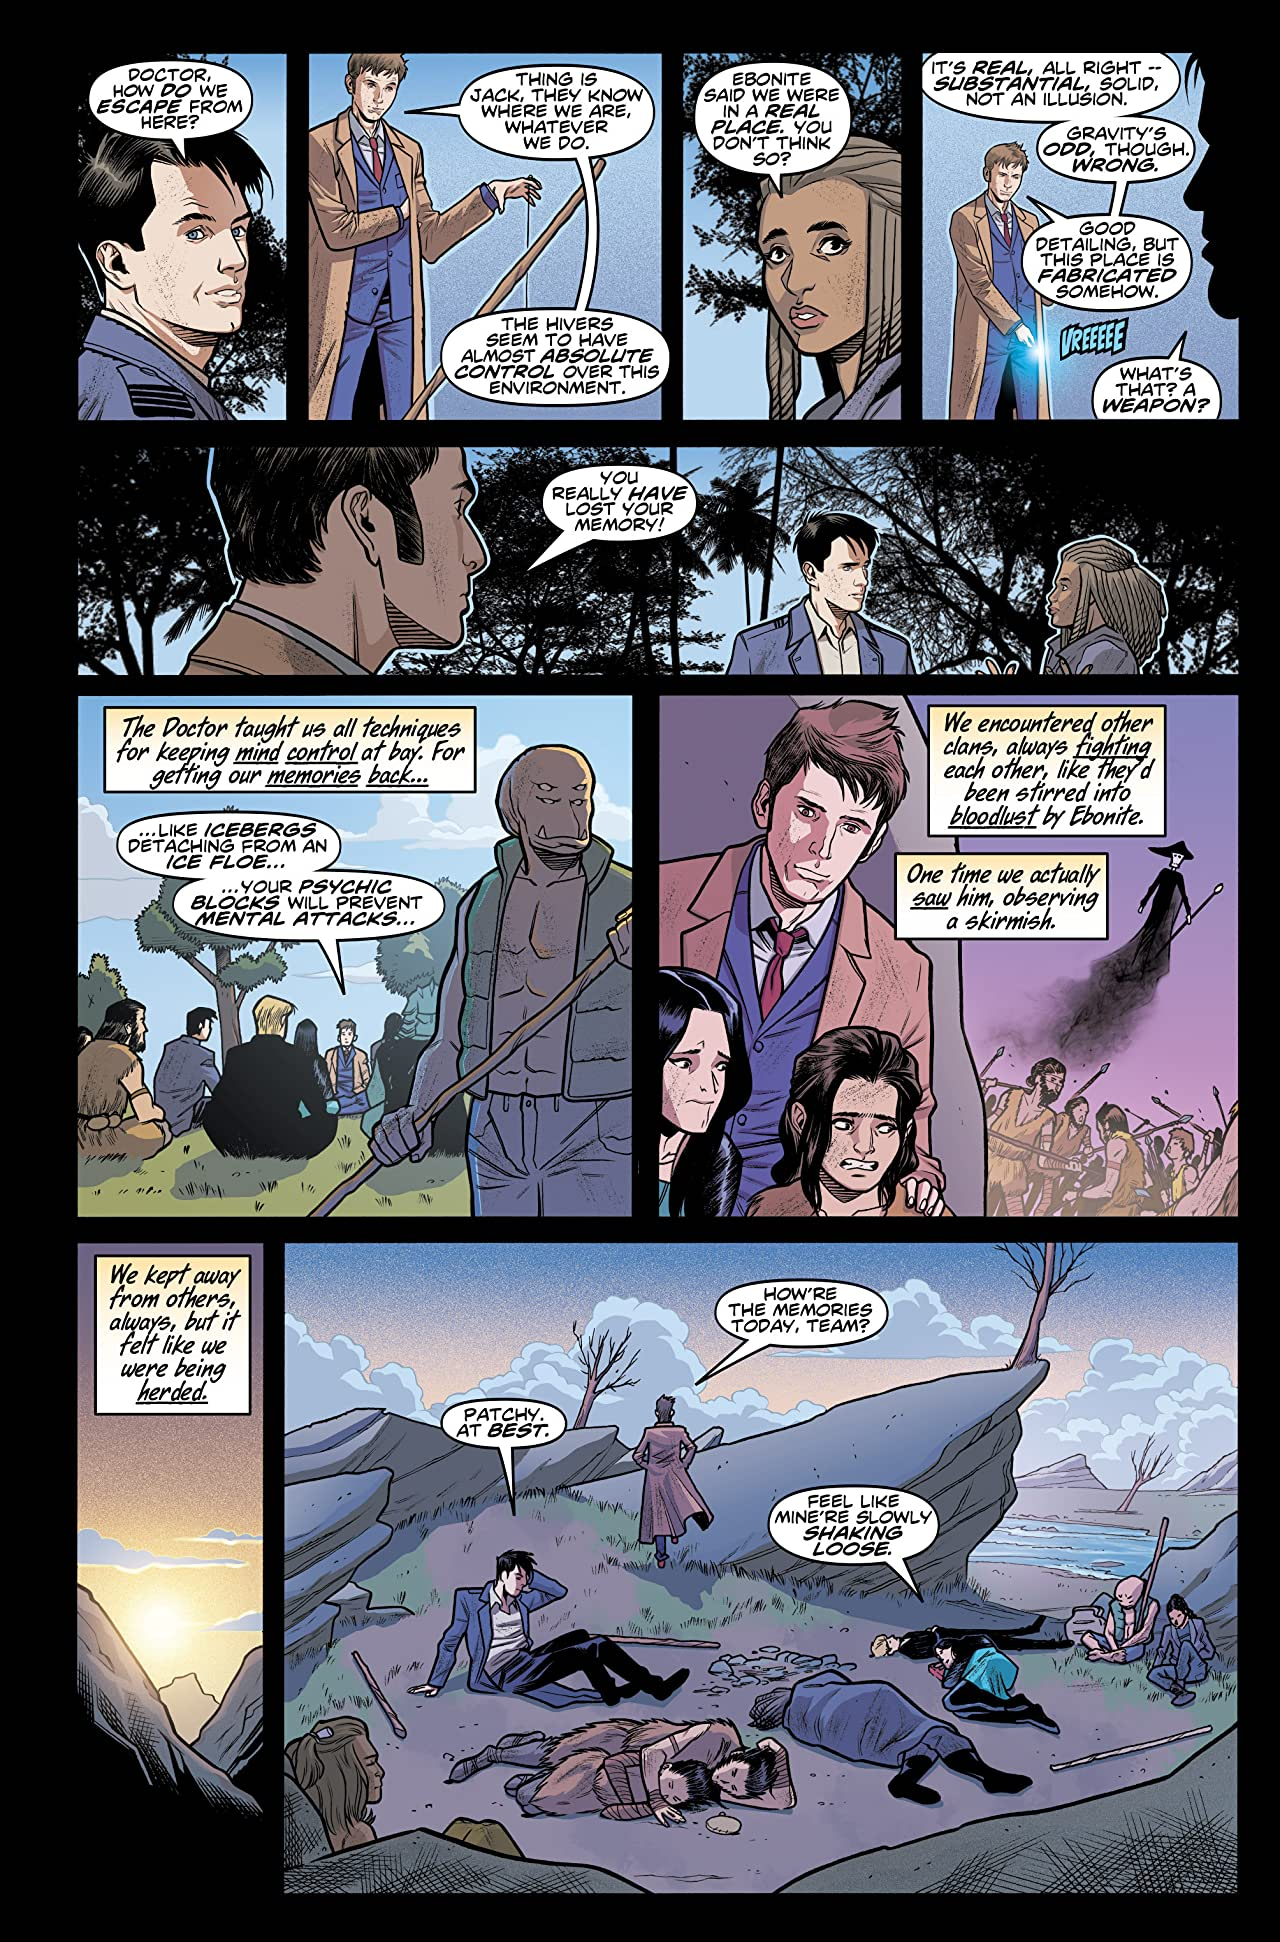 Doctor Who: The Tenth Doctor #2.7